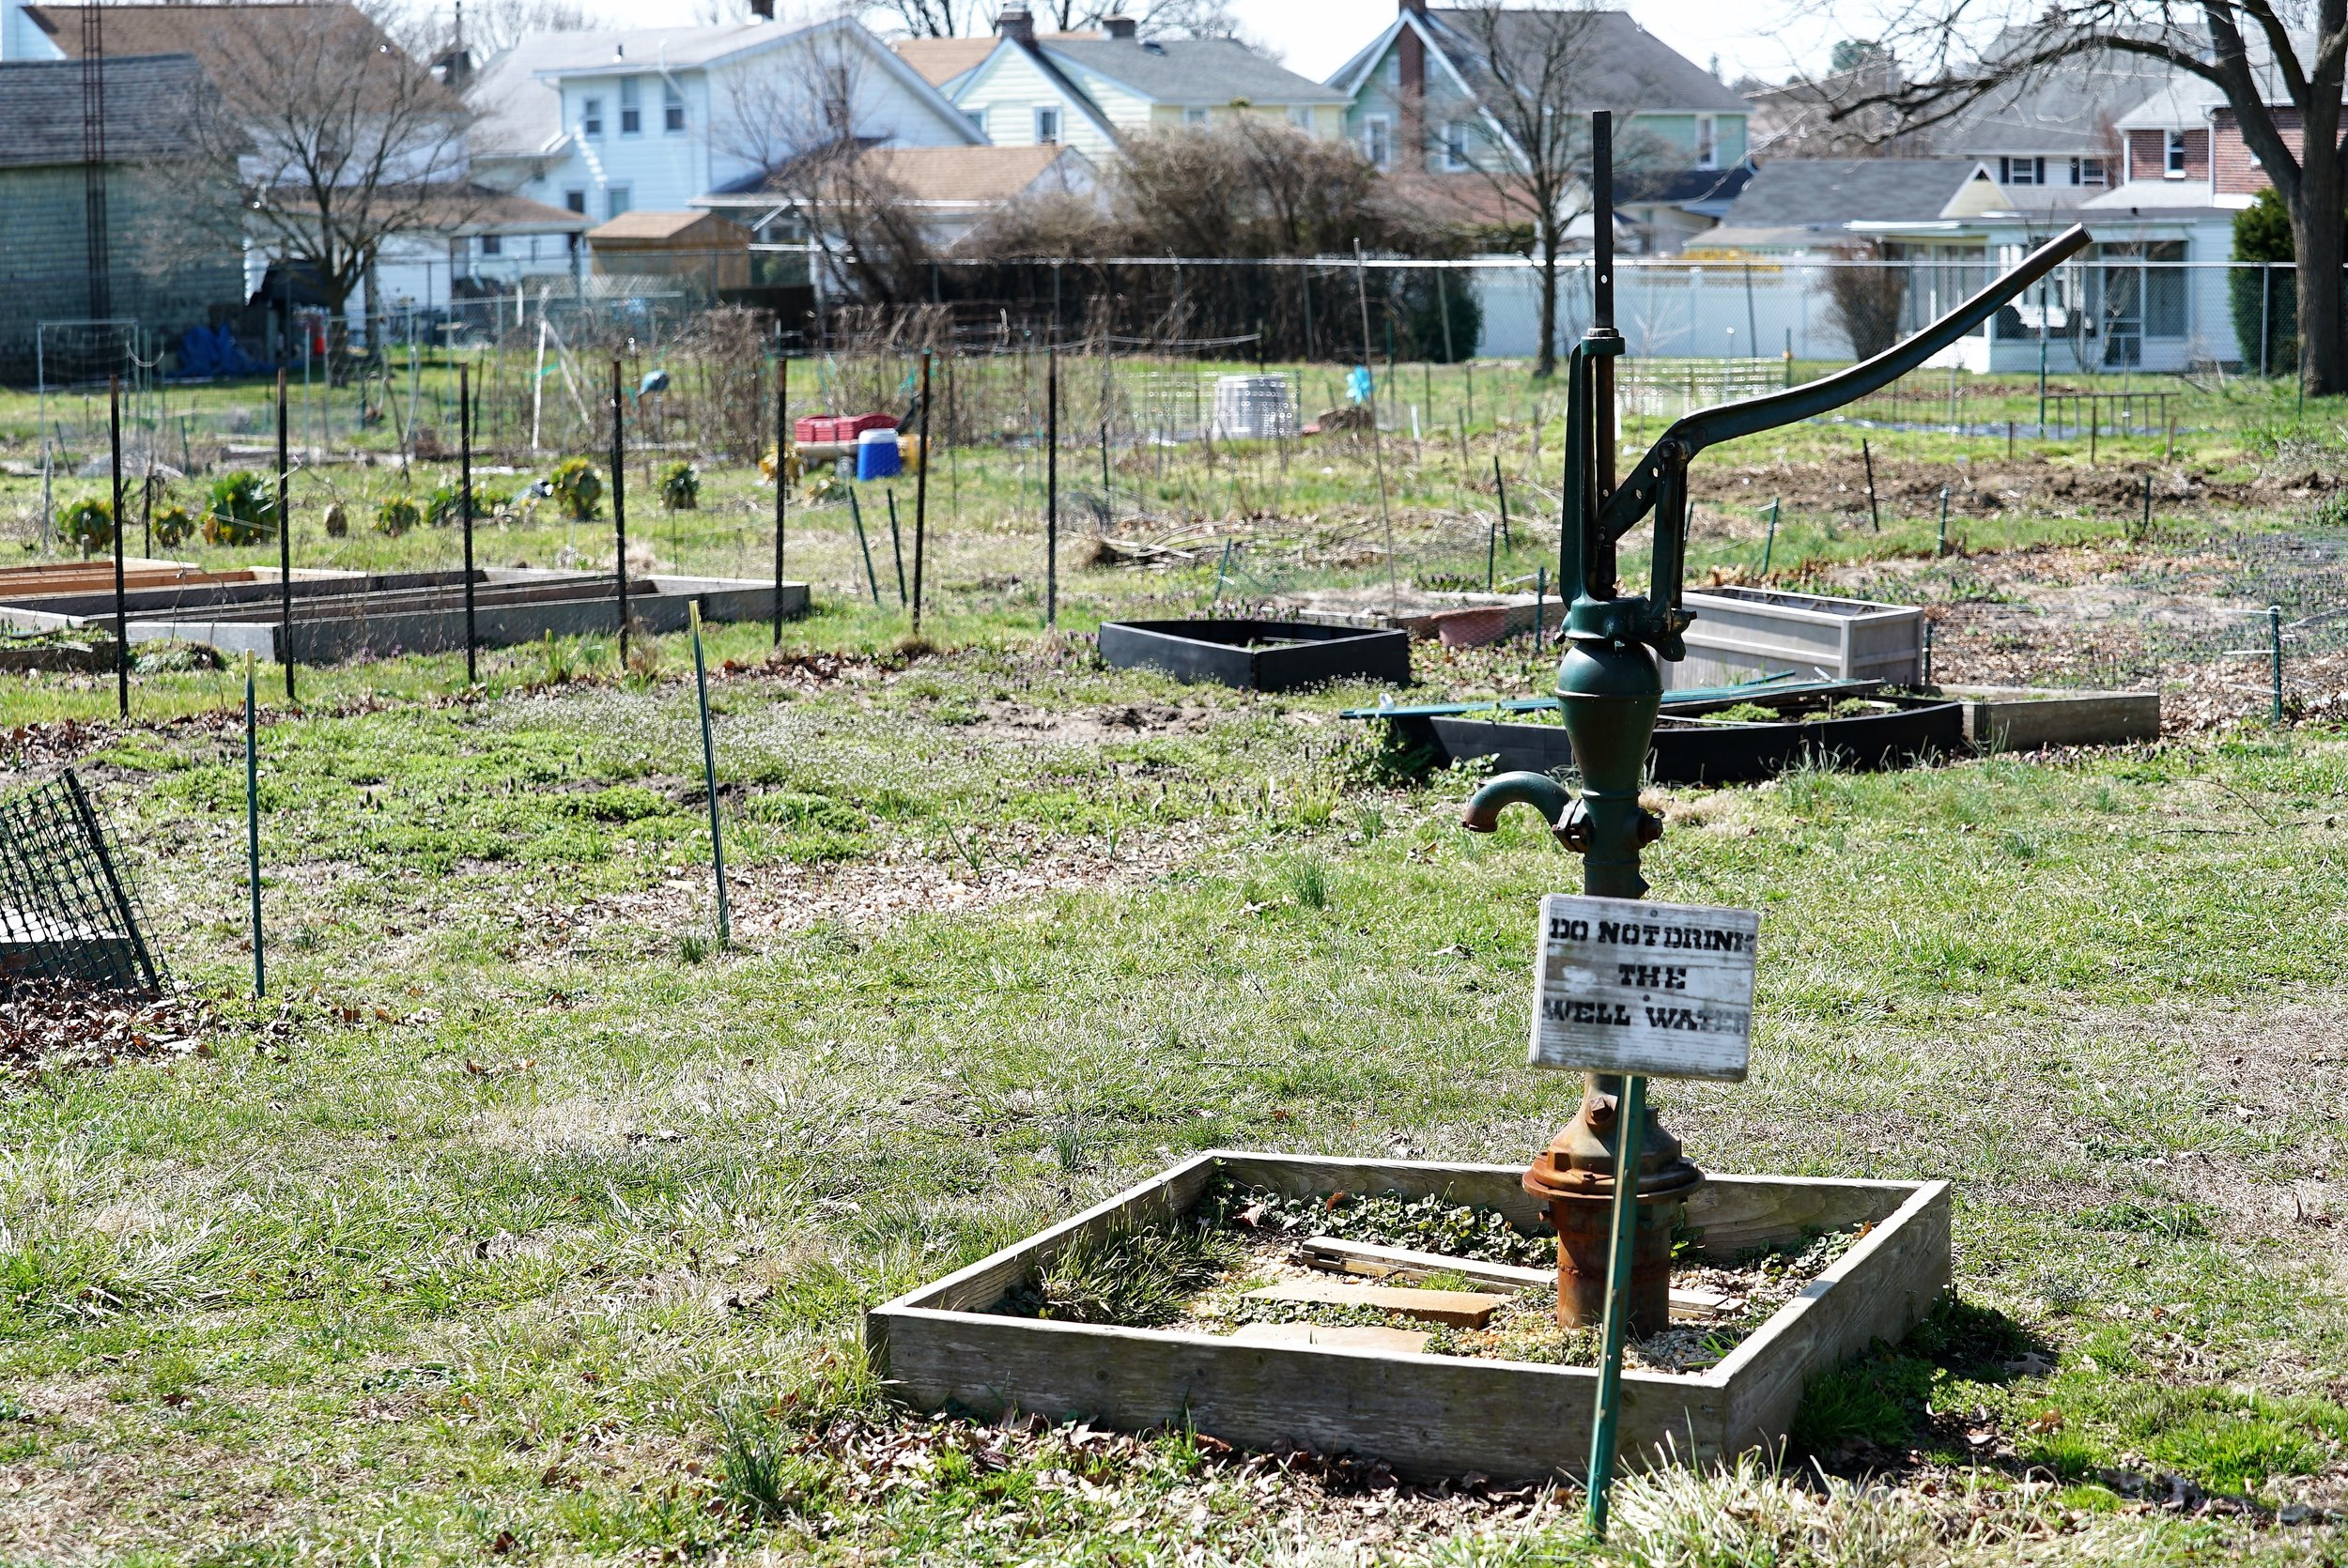 The burial ground is on one side of this open space; the community garden is on the other side.